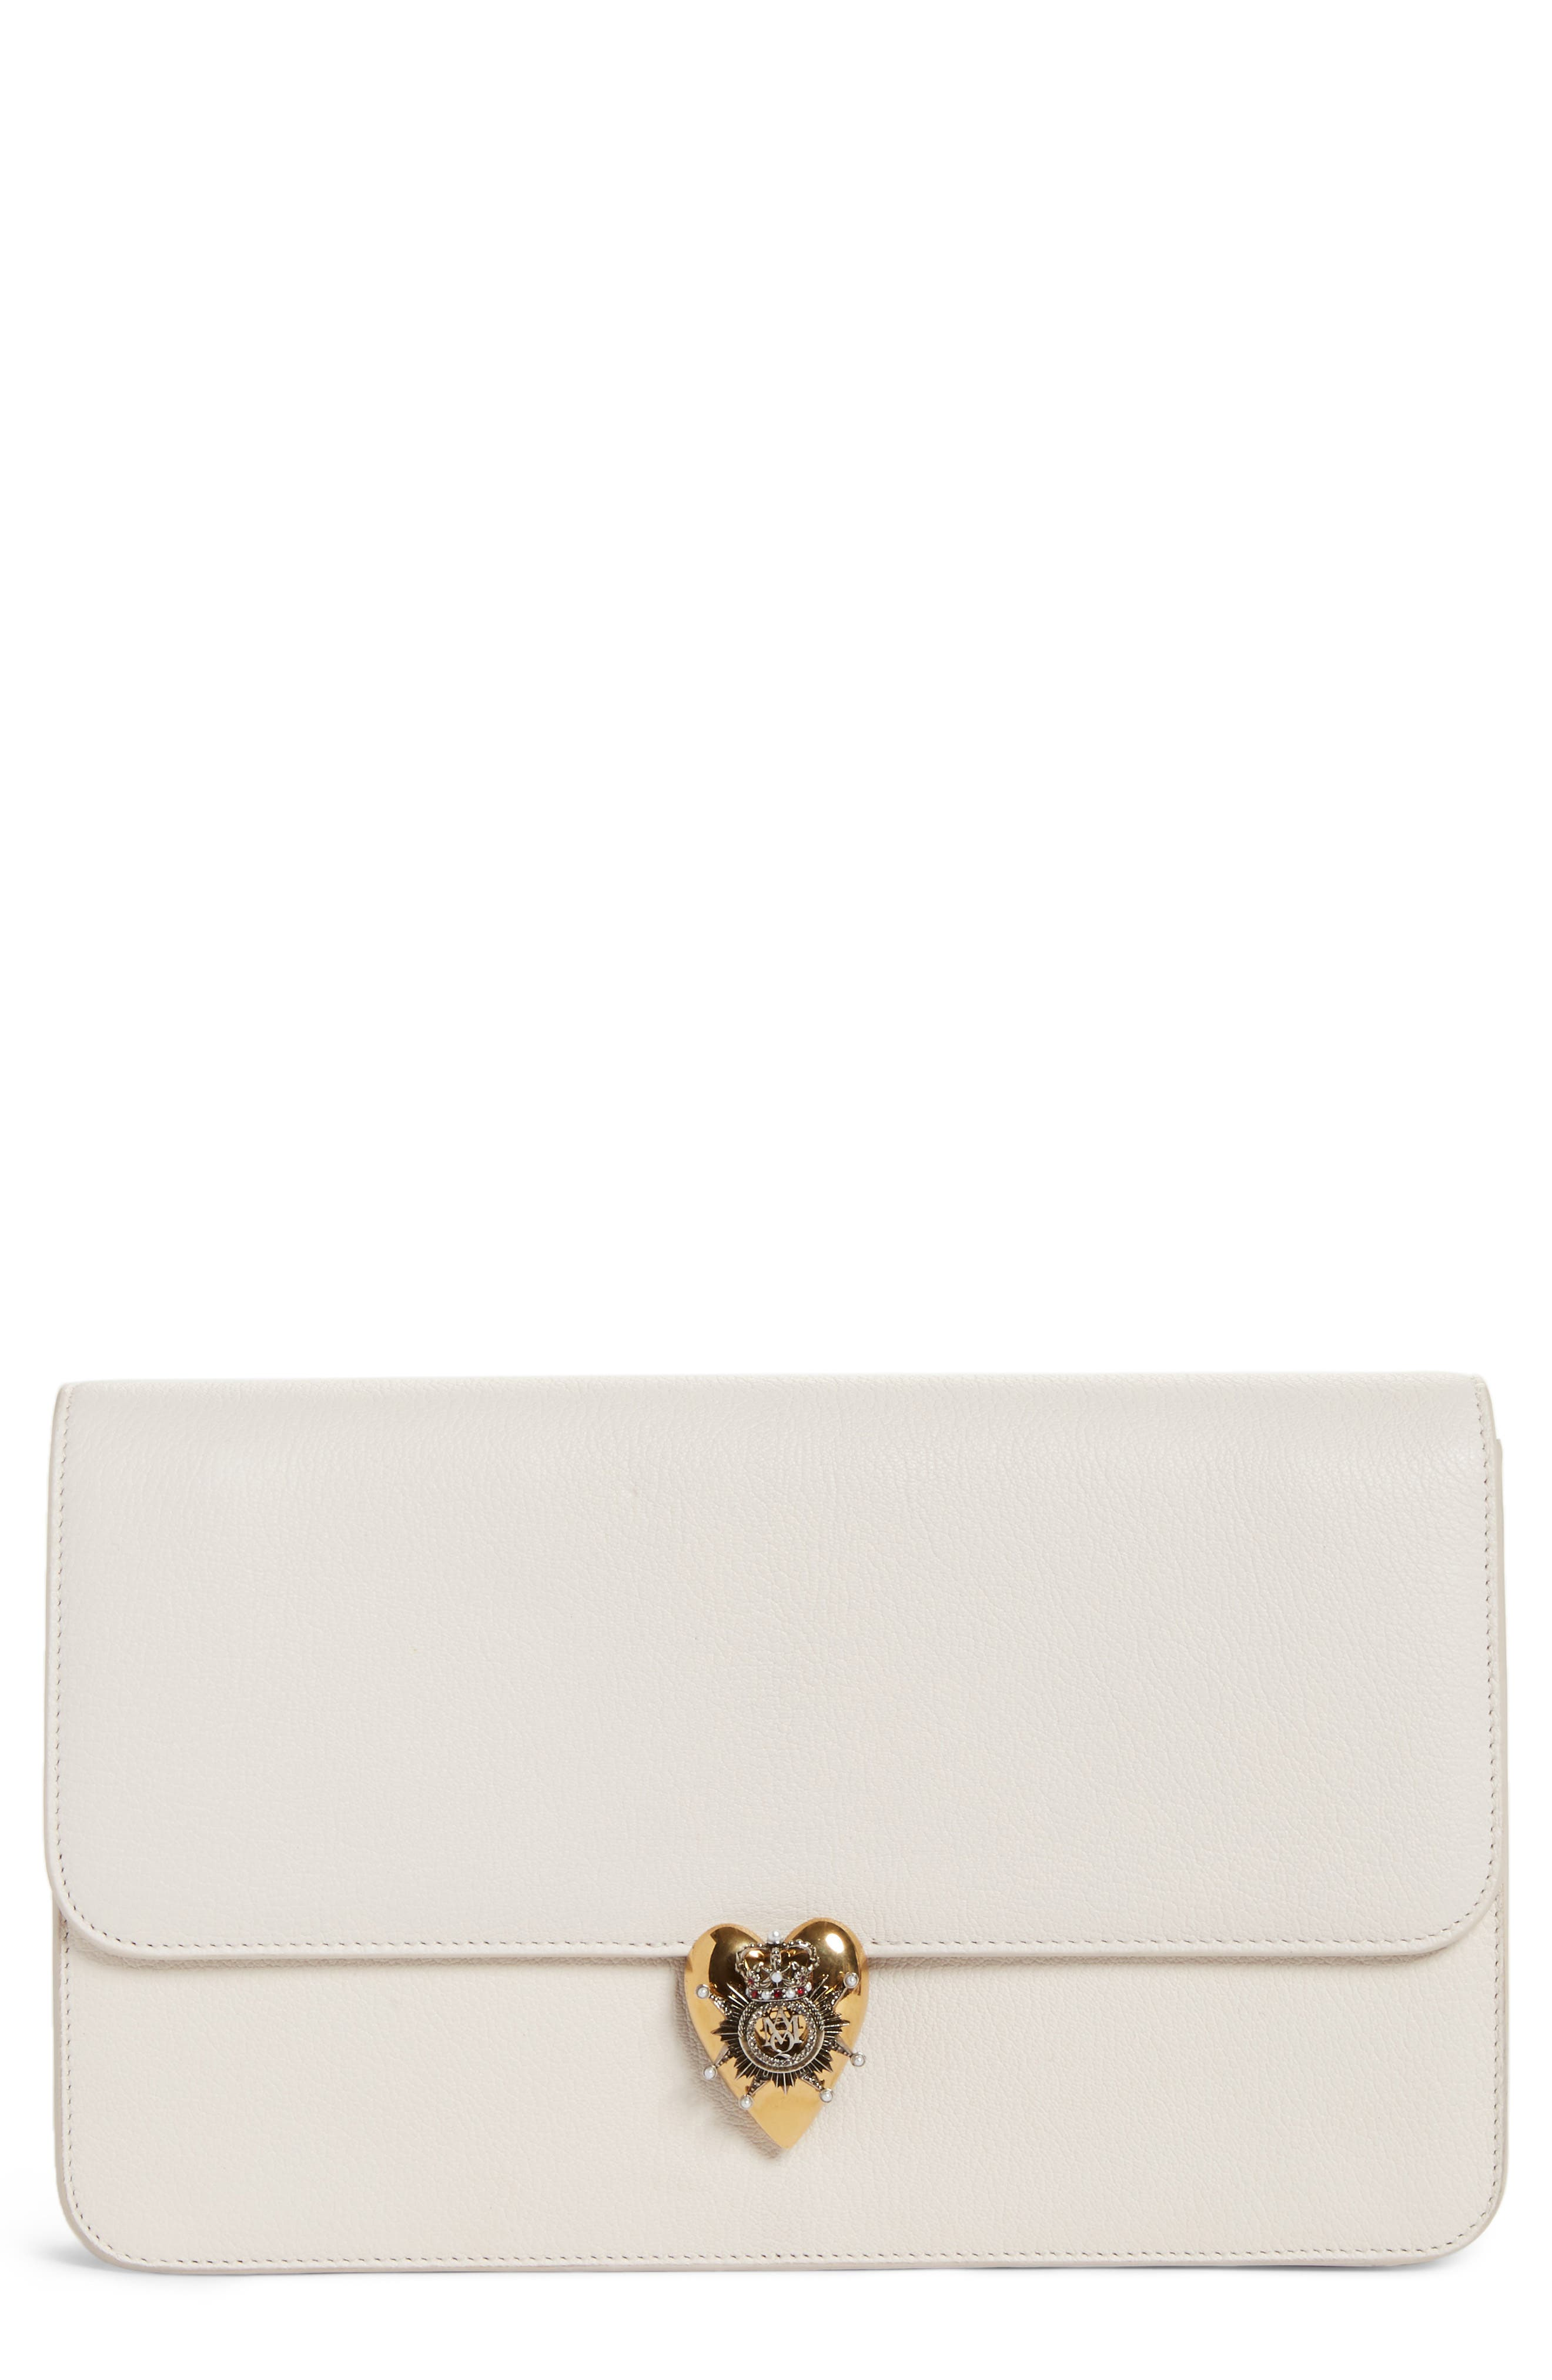 Heart Leather Clutch,                             Main thumbnail 1, color,                             Off White